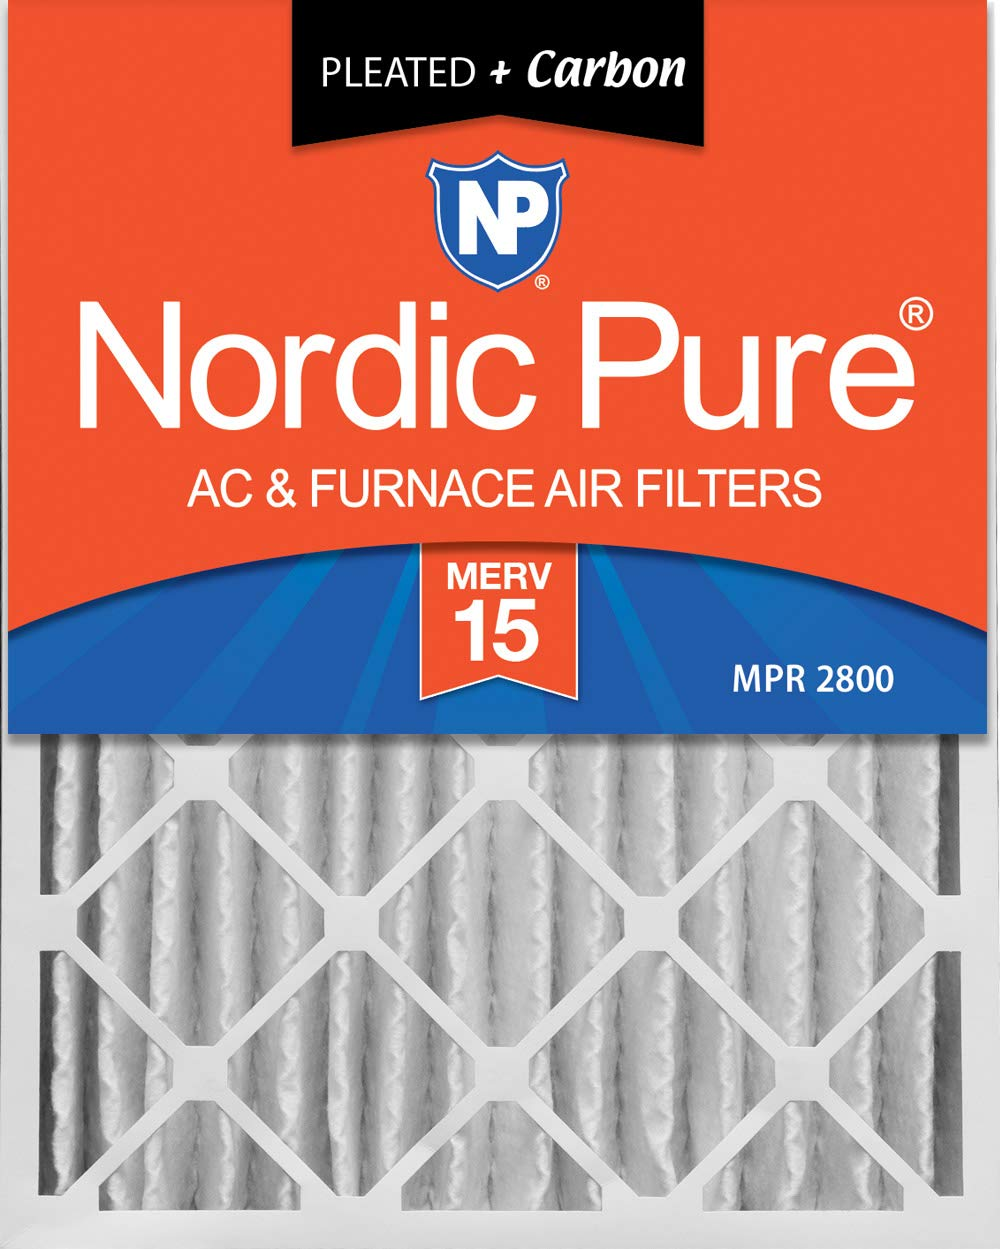 Nordic Pure 16x25x4 (3-5/8 Actual Depth) Plus Pleated AC Furnace Air Filters, 2 PACK, MERV 15 + Carbon, 2 PACK